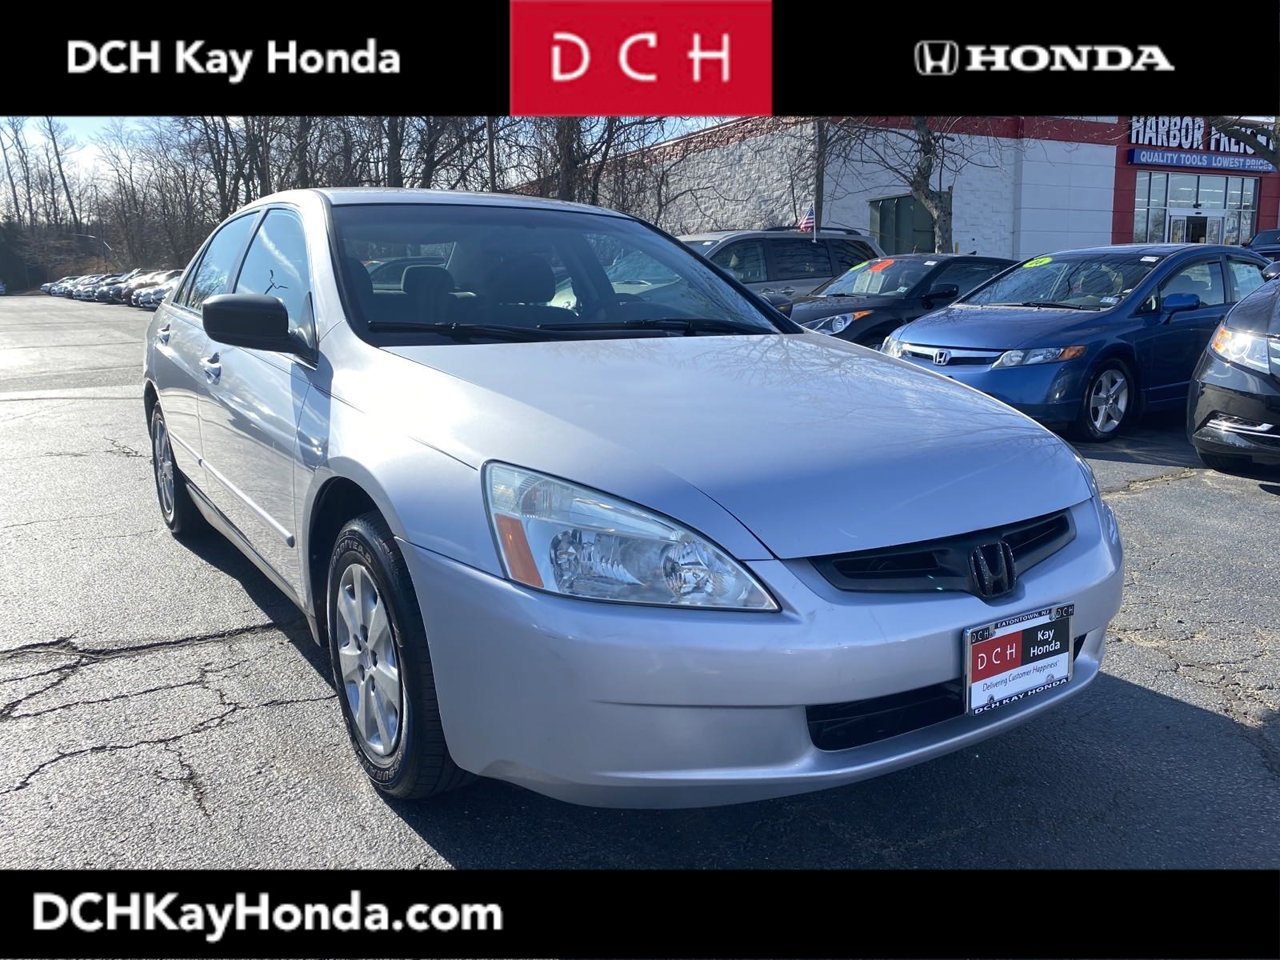 Used 2004 Honda Accord Sedan in Eatontown, NJ